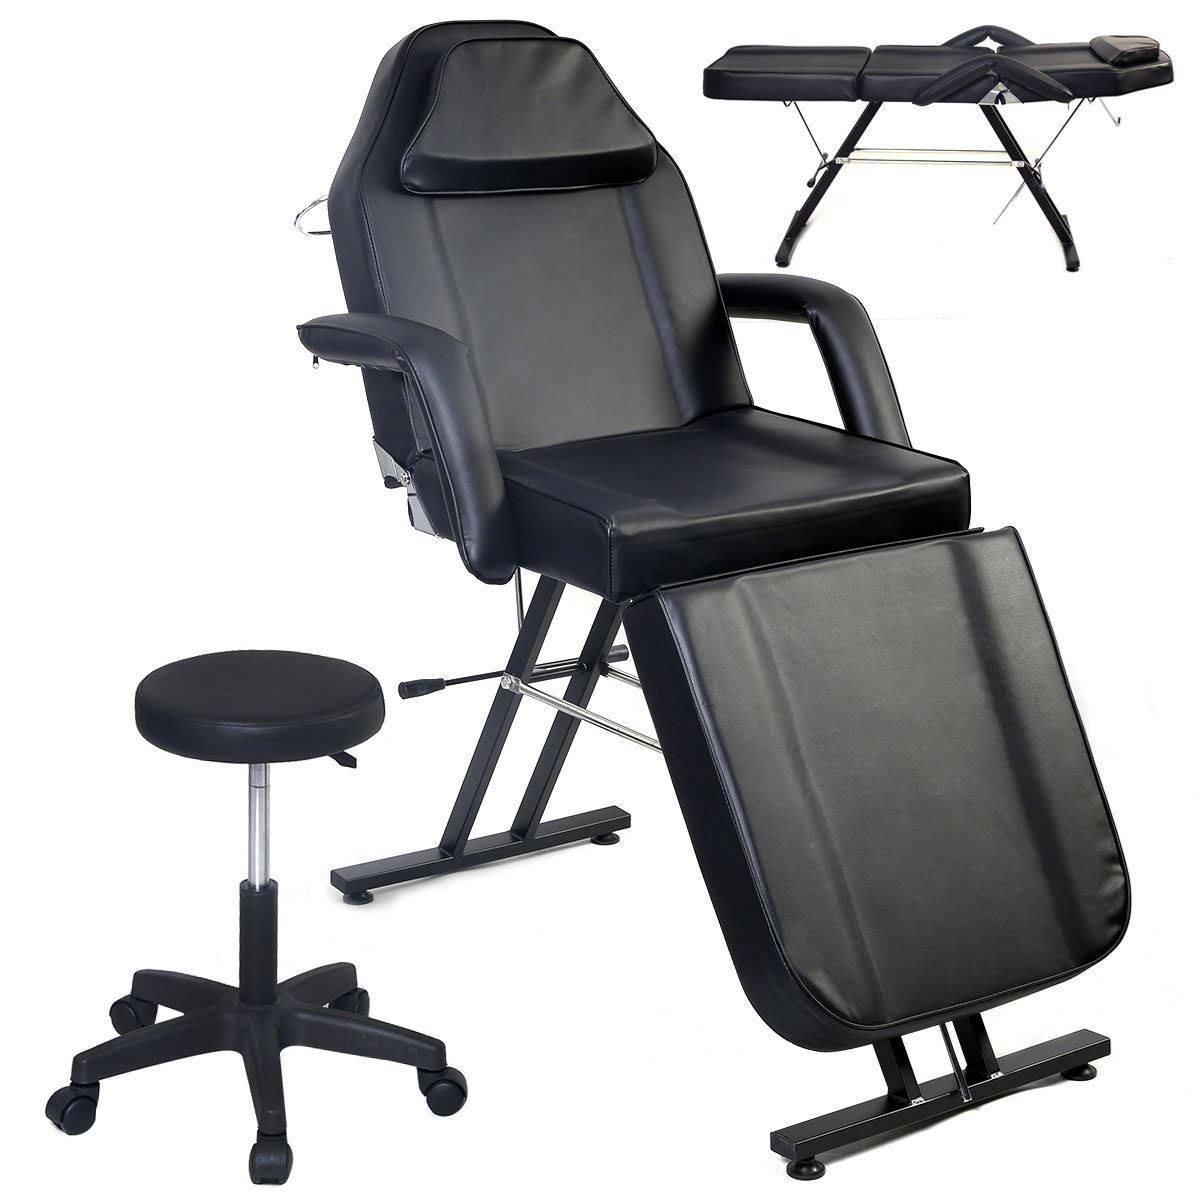 beauty salon chair stressless similar massage table facial bed adjustable barber black walmart com